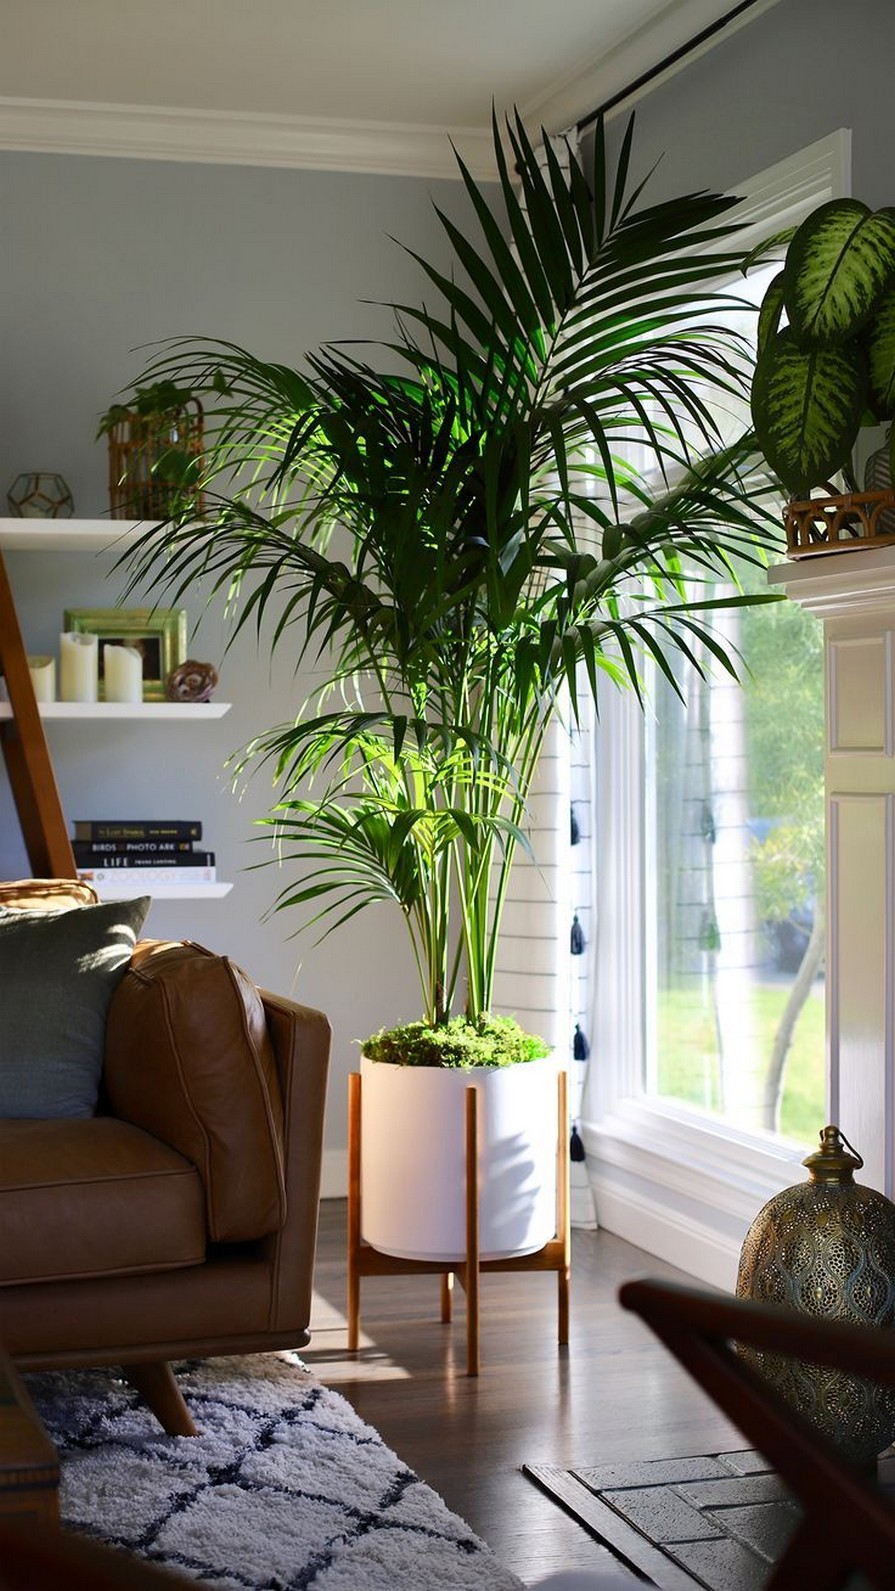 11 Indoor Plants For Home Or Office – Home Decor 33